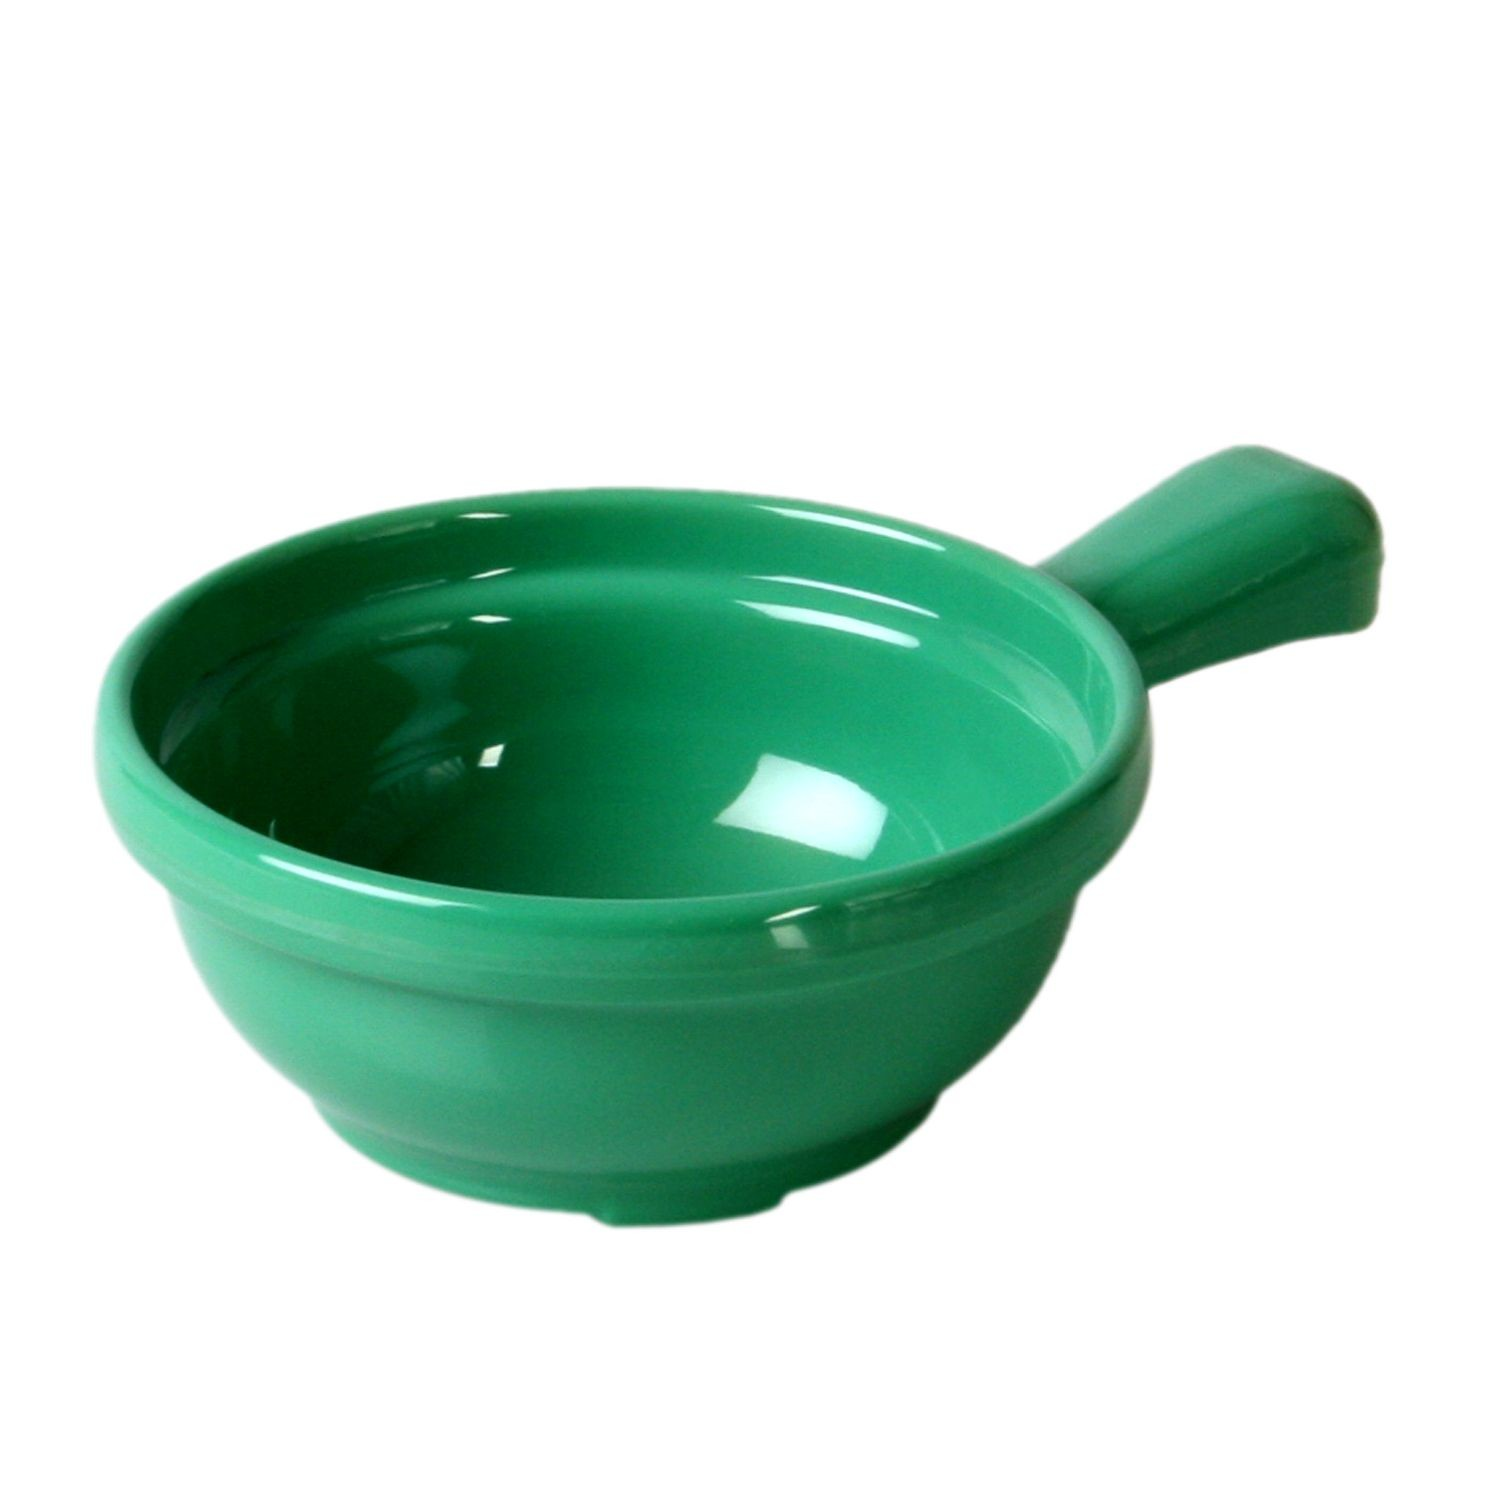 Thunder Group CR305GR Green Melamine Soup Bowl with Handle 10 oz   - 1 doz